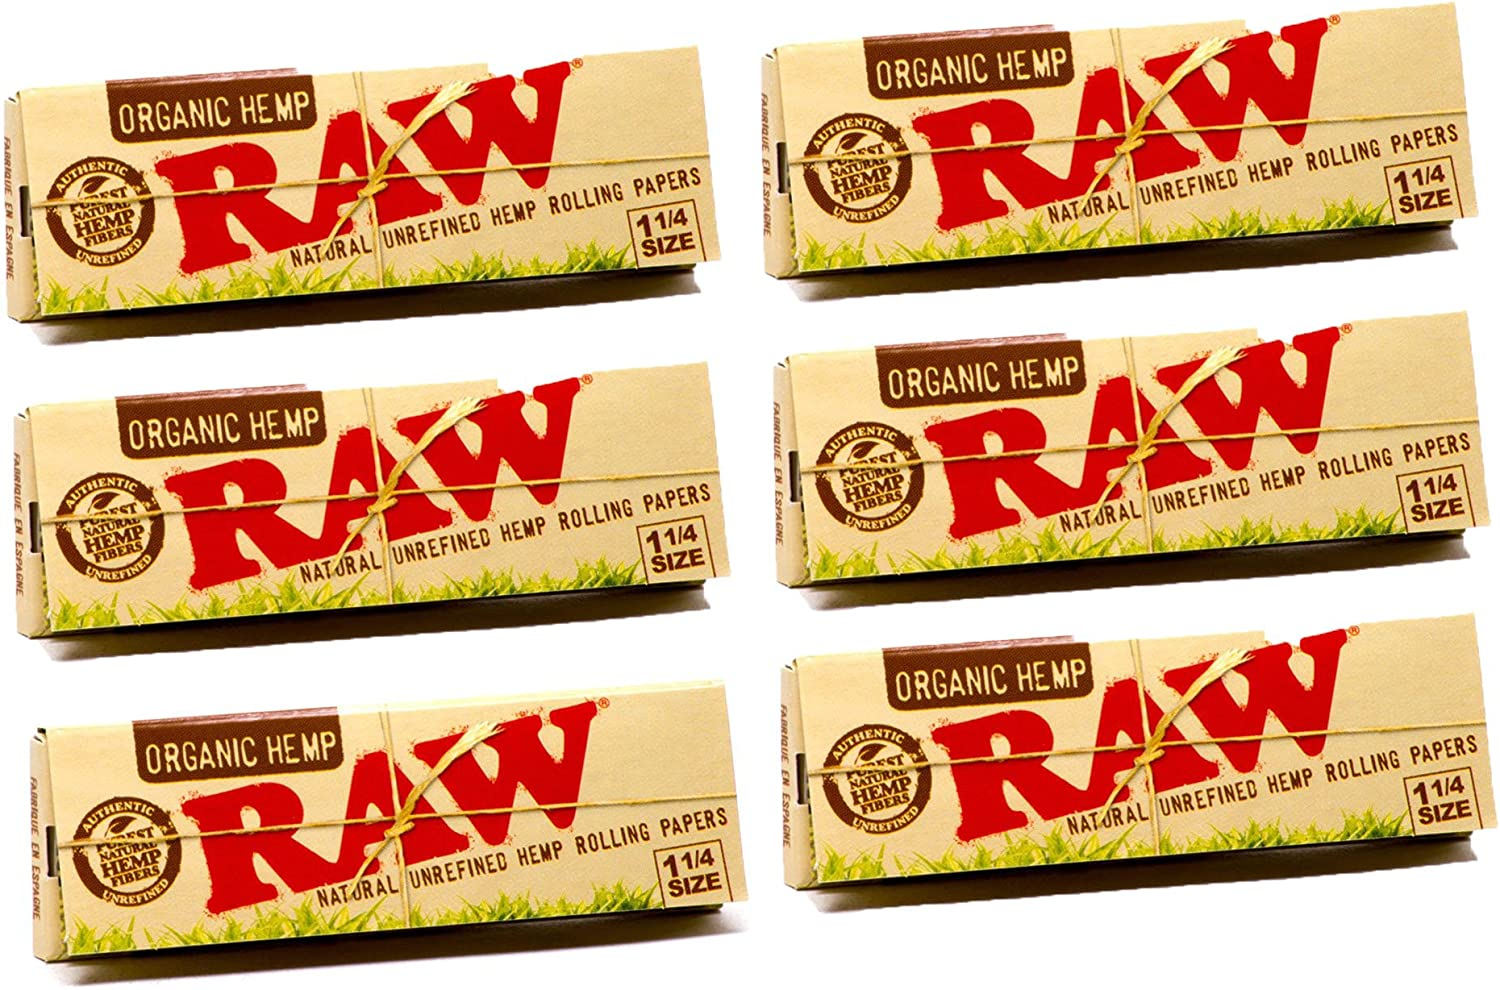 RAW Organic Hemp Natural Unrefined Rolling Papers 1 1//4   2 Packs